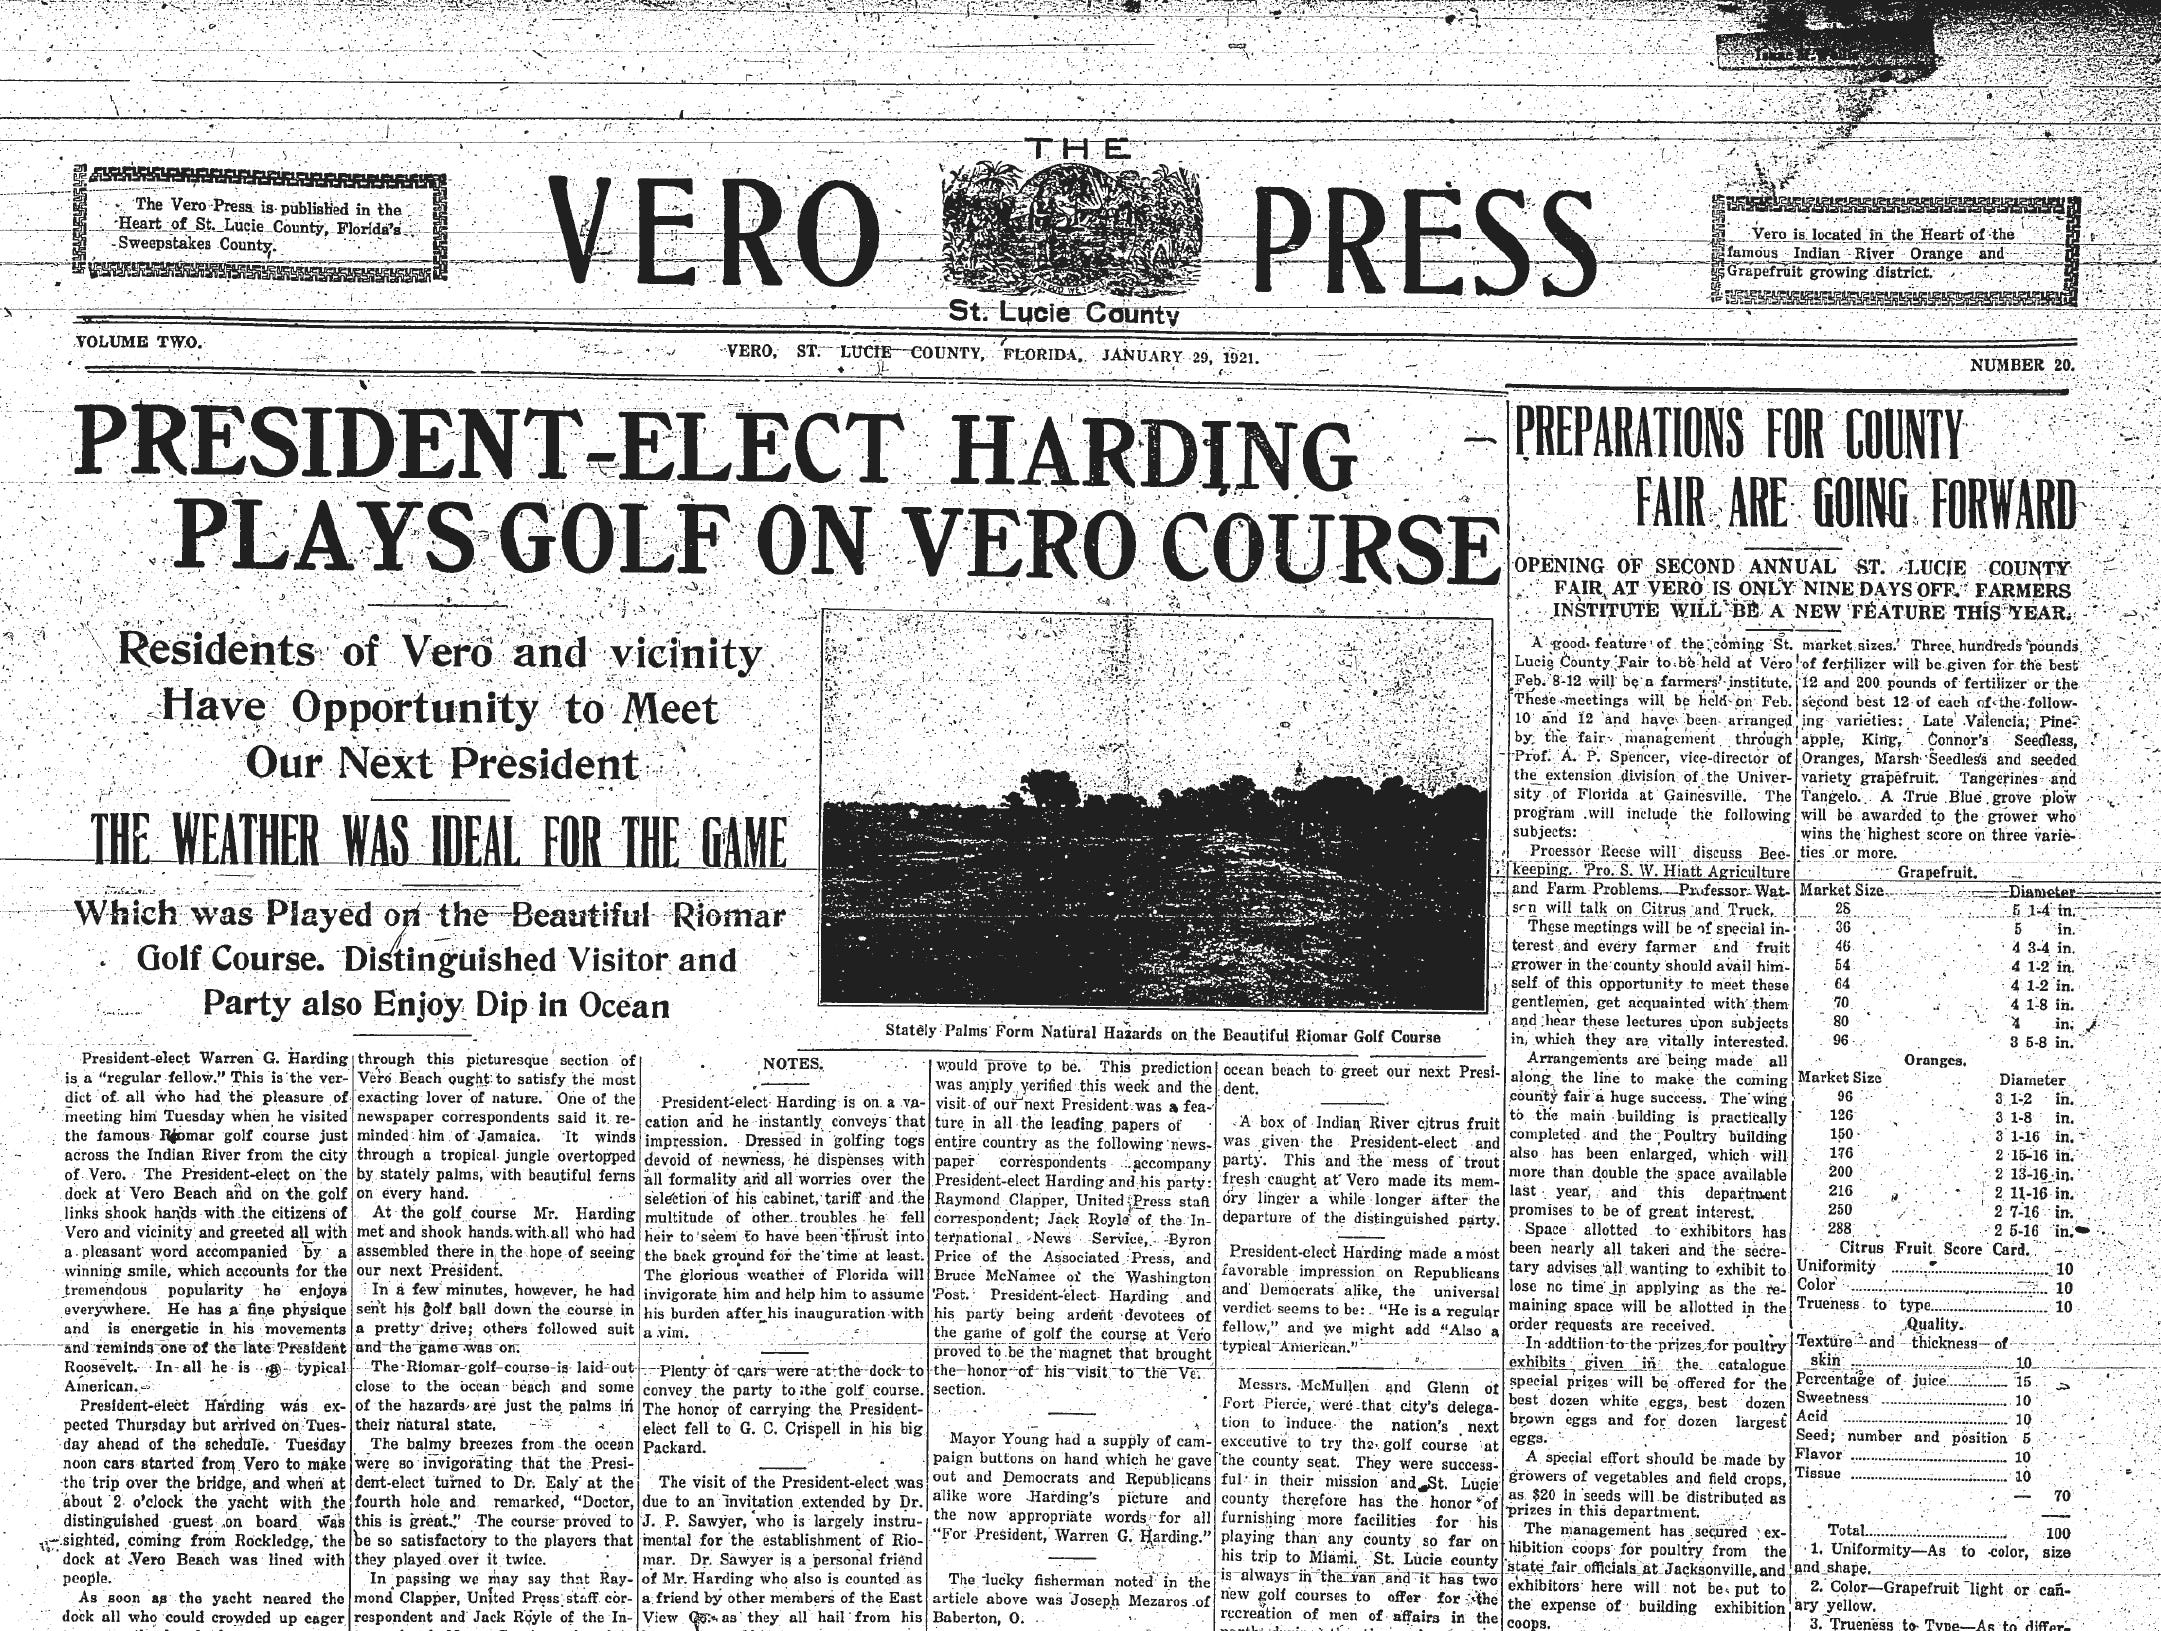 January 29, 1921, President-Elect Harding Plays Golf on Vero Course